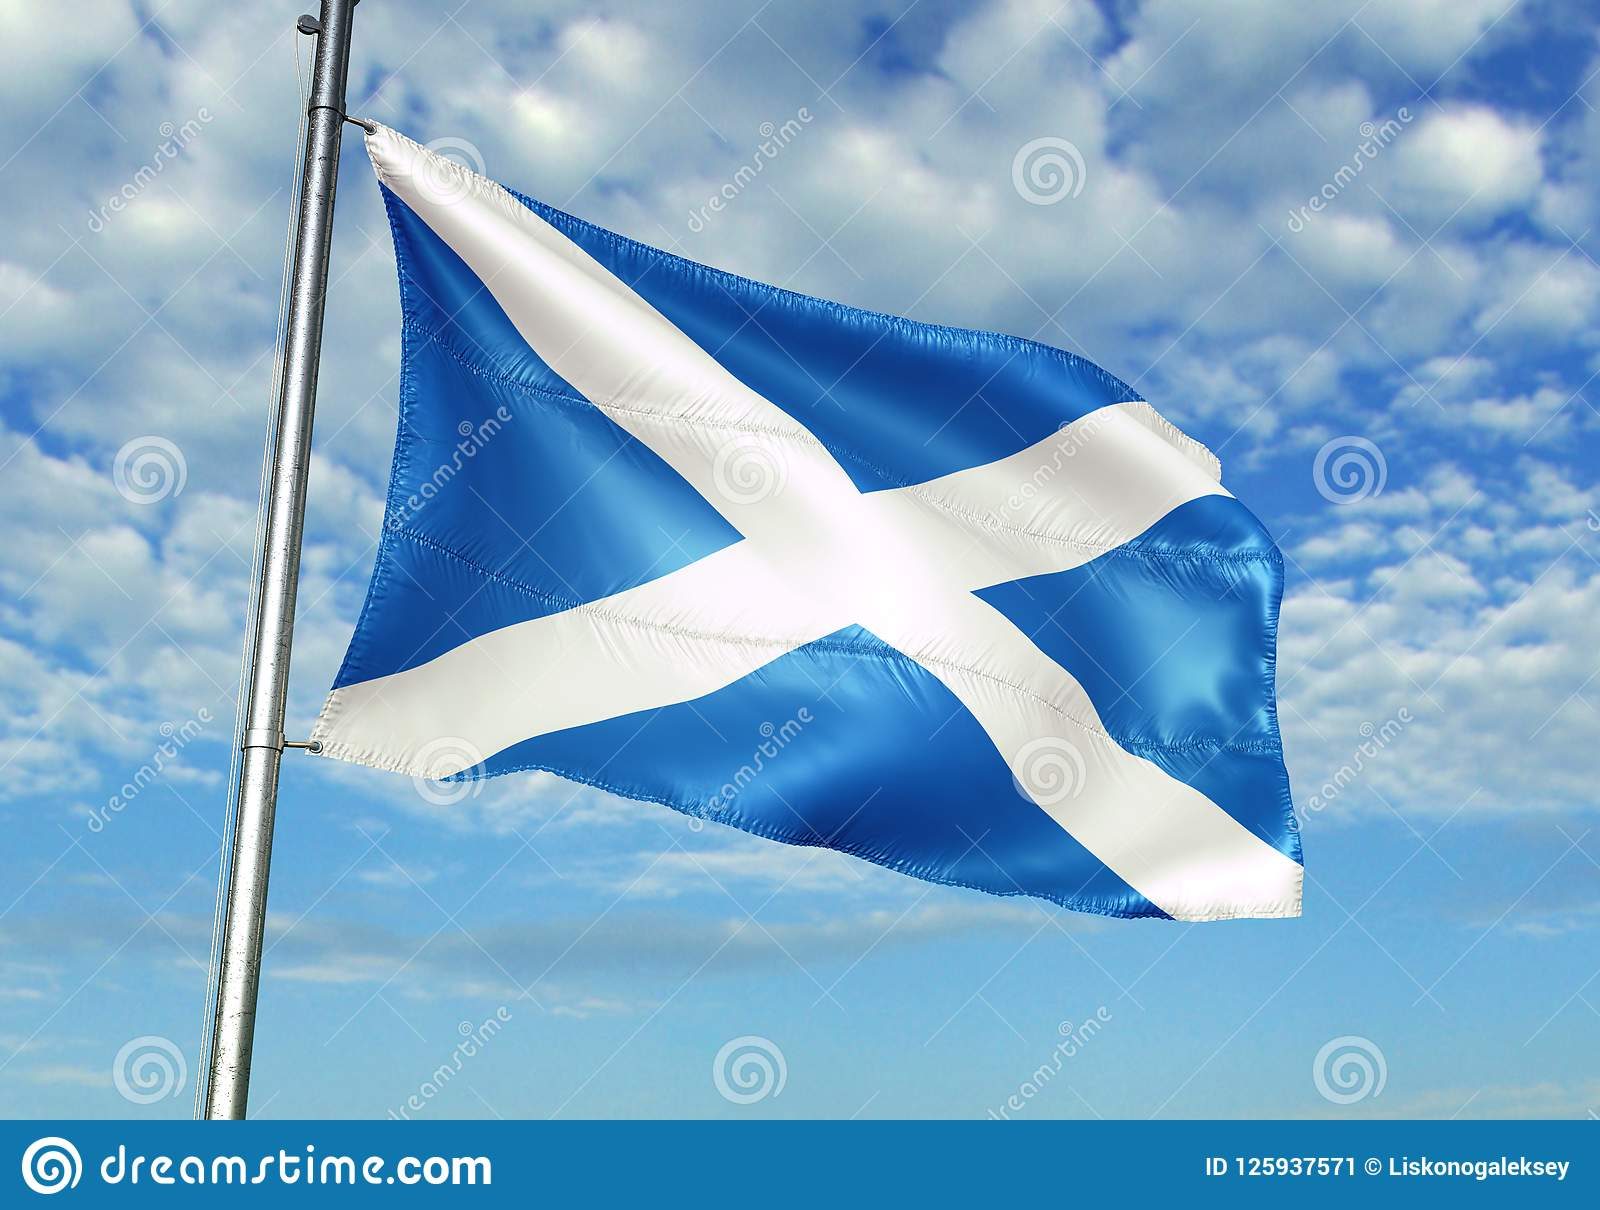 Scotland flag waving with sky on background realistic 3d illustration